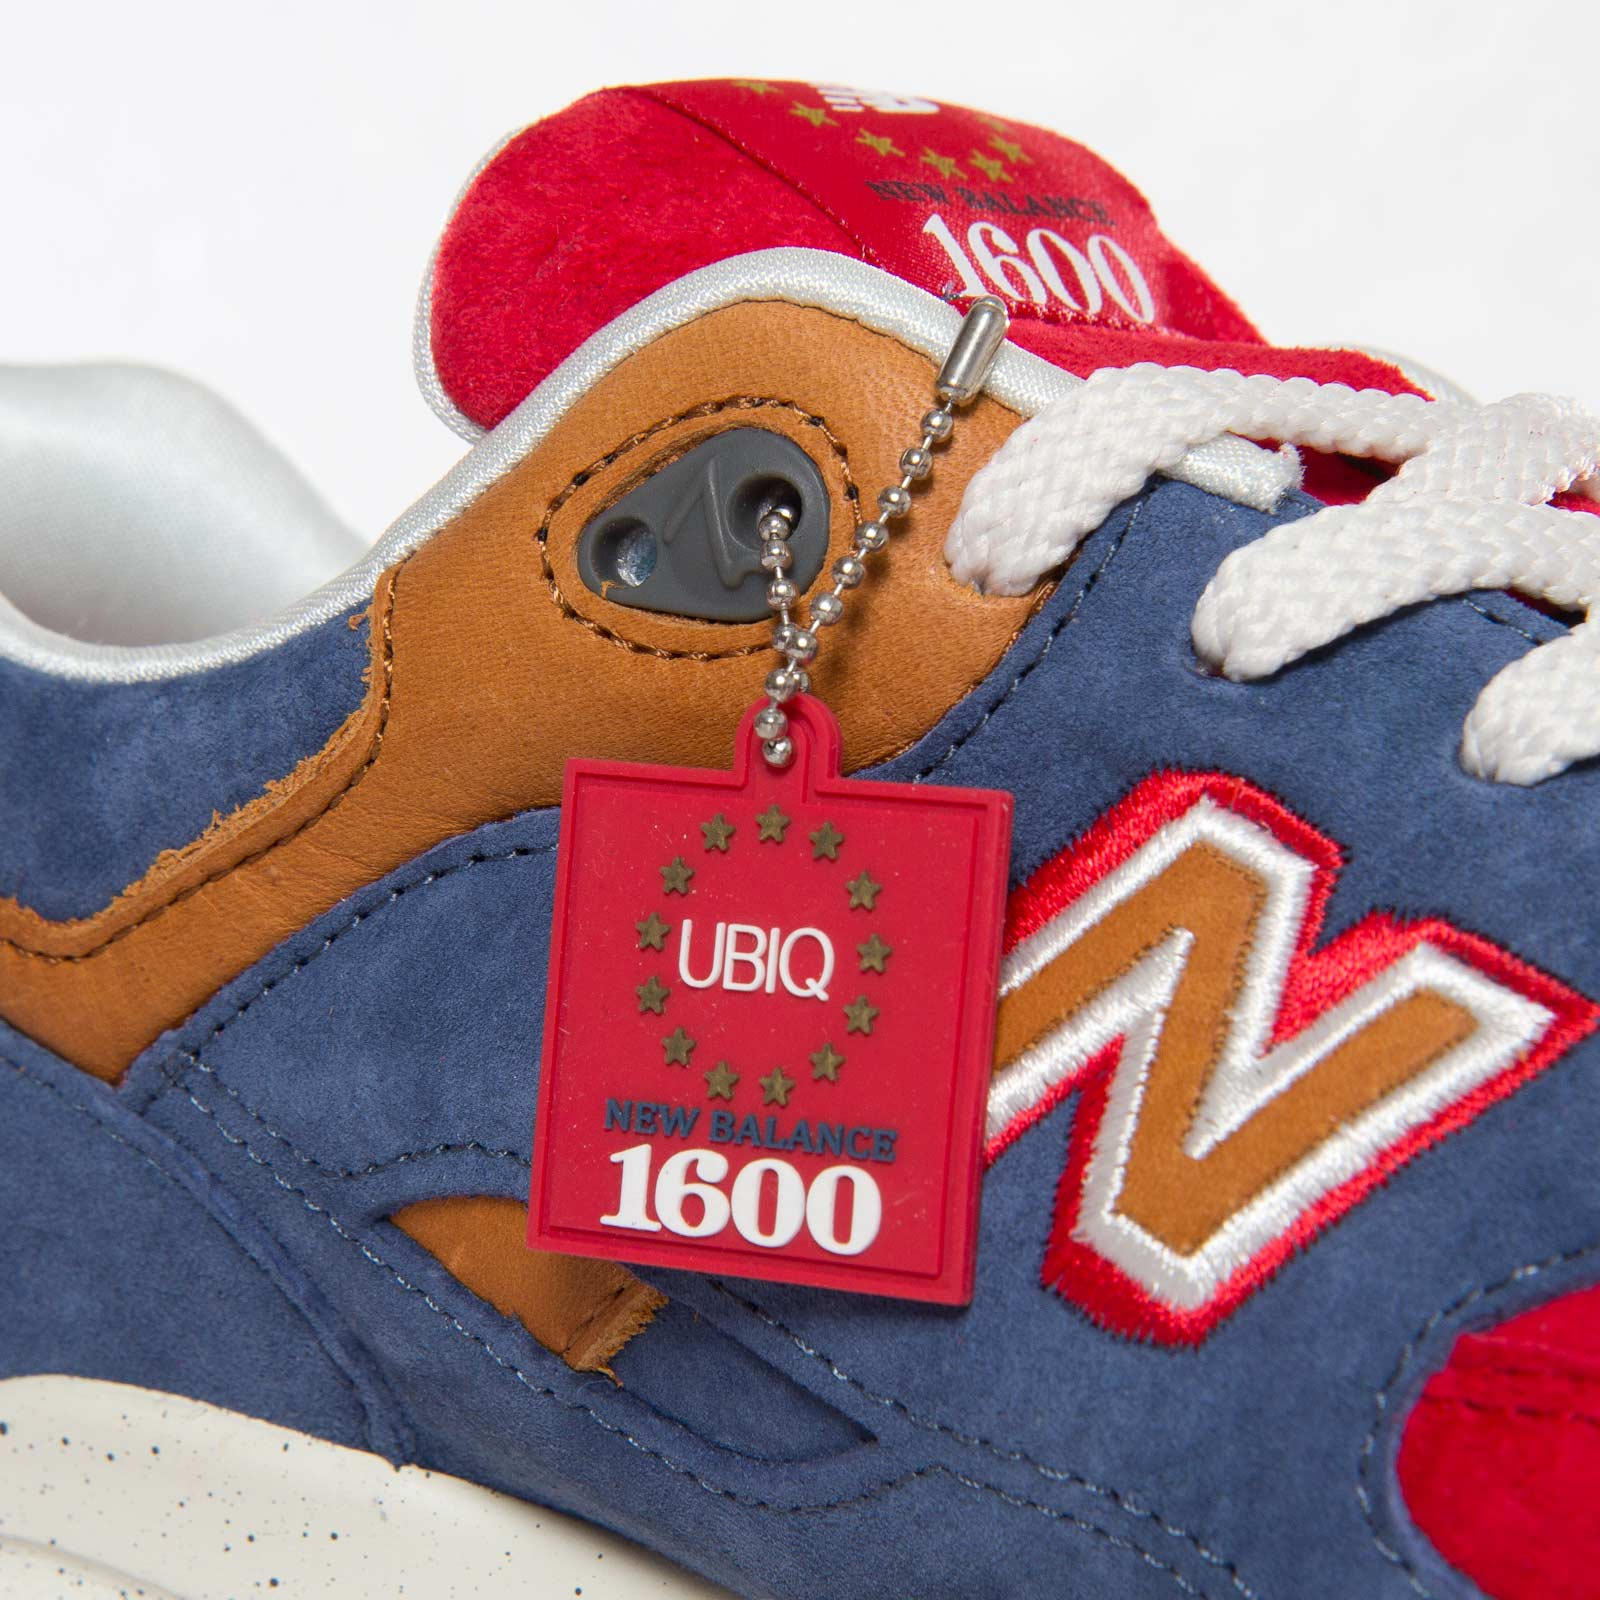 the latest 0a2b4 04959 New Balance CM1600 - Cm1600bn - Sneakersnstuff | sneakers ...